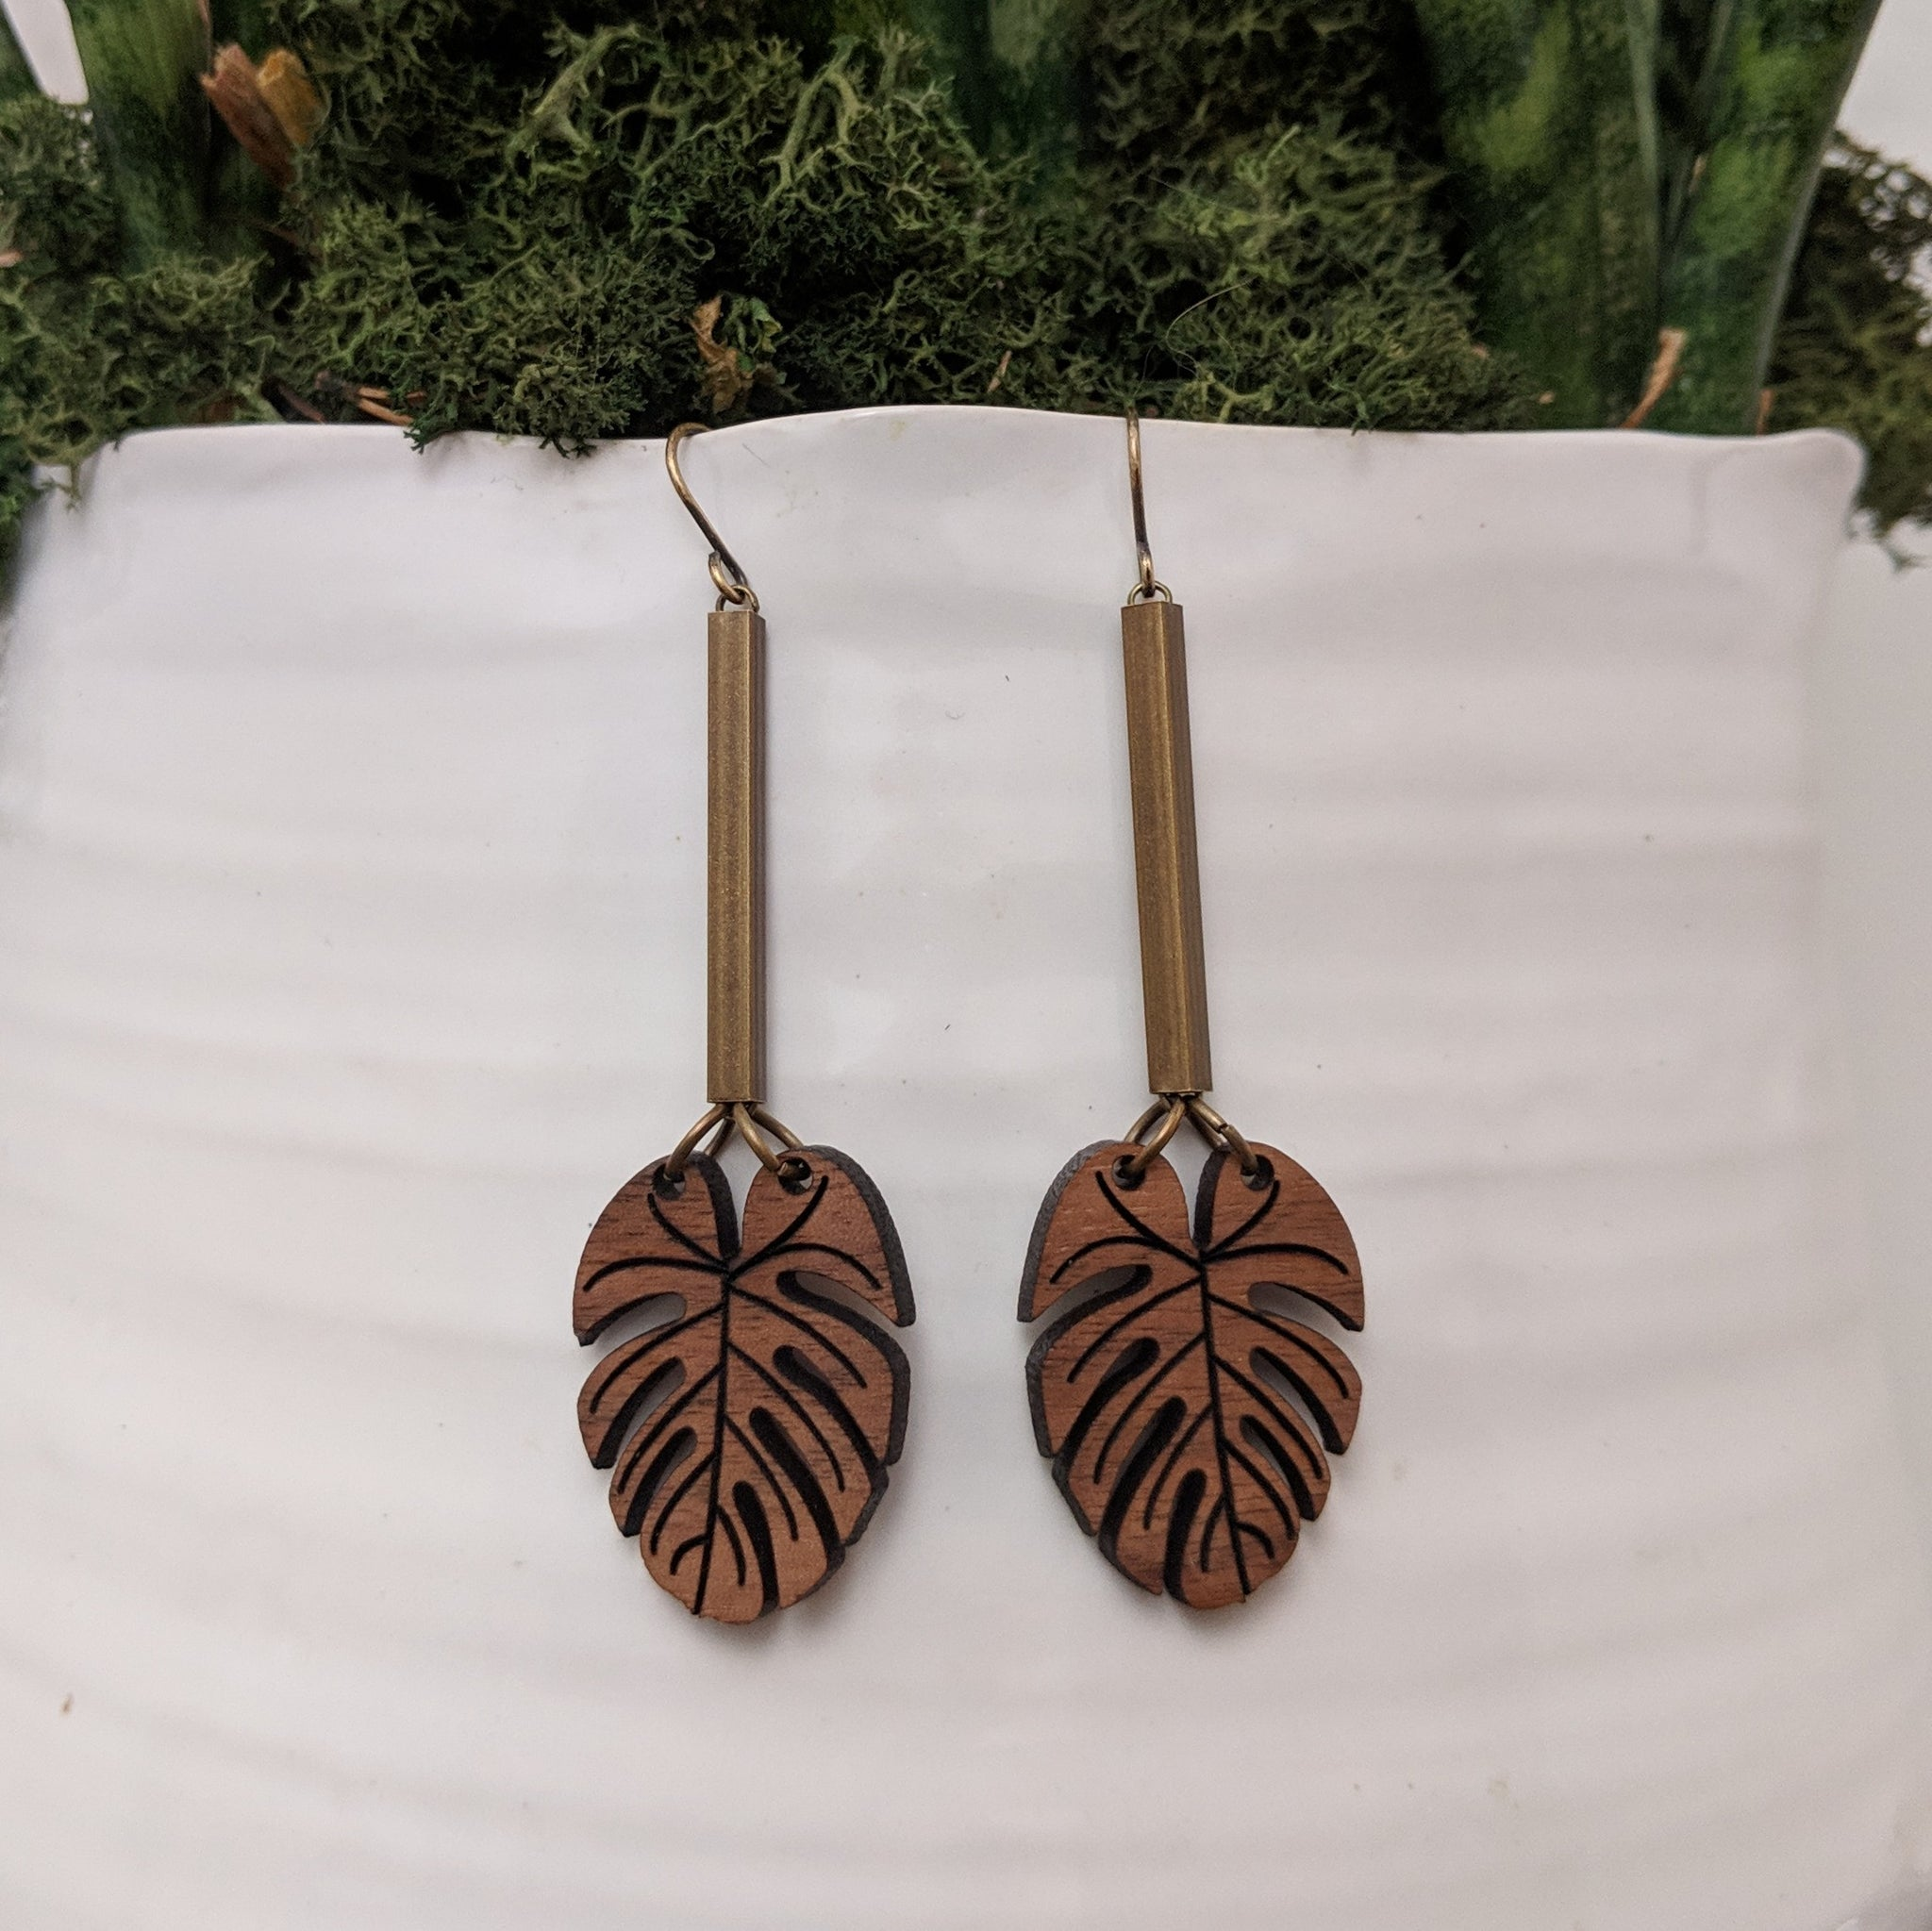 Small Monstera and Brass Earrings - Walnut or Maple